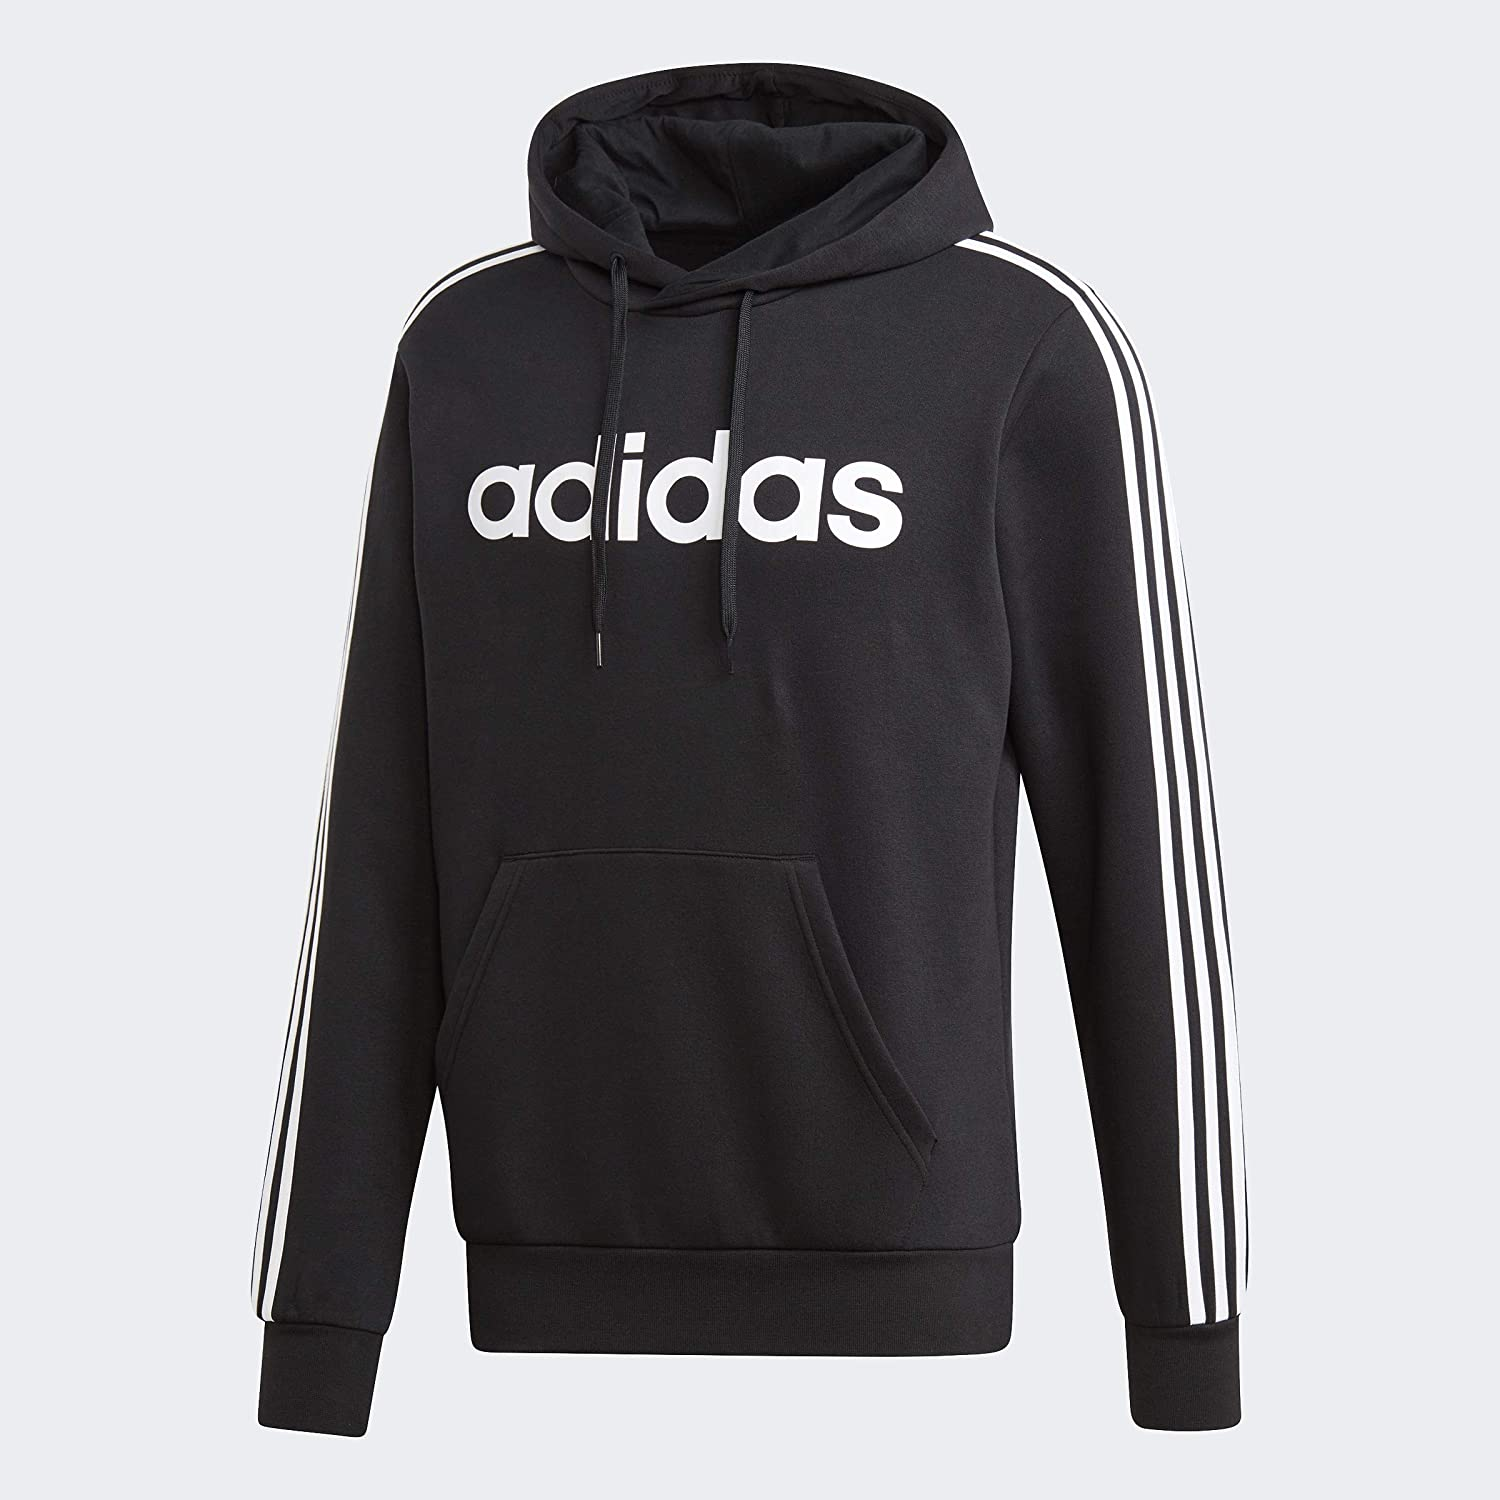 adidas Men's Essentials 3-stripes Pullover Fleece Hooded Sweatshirt